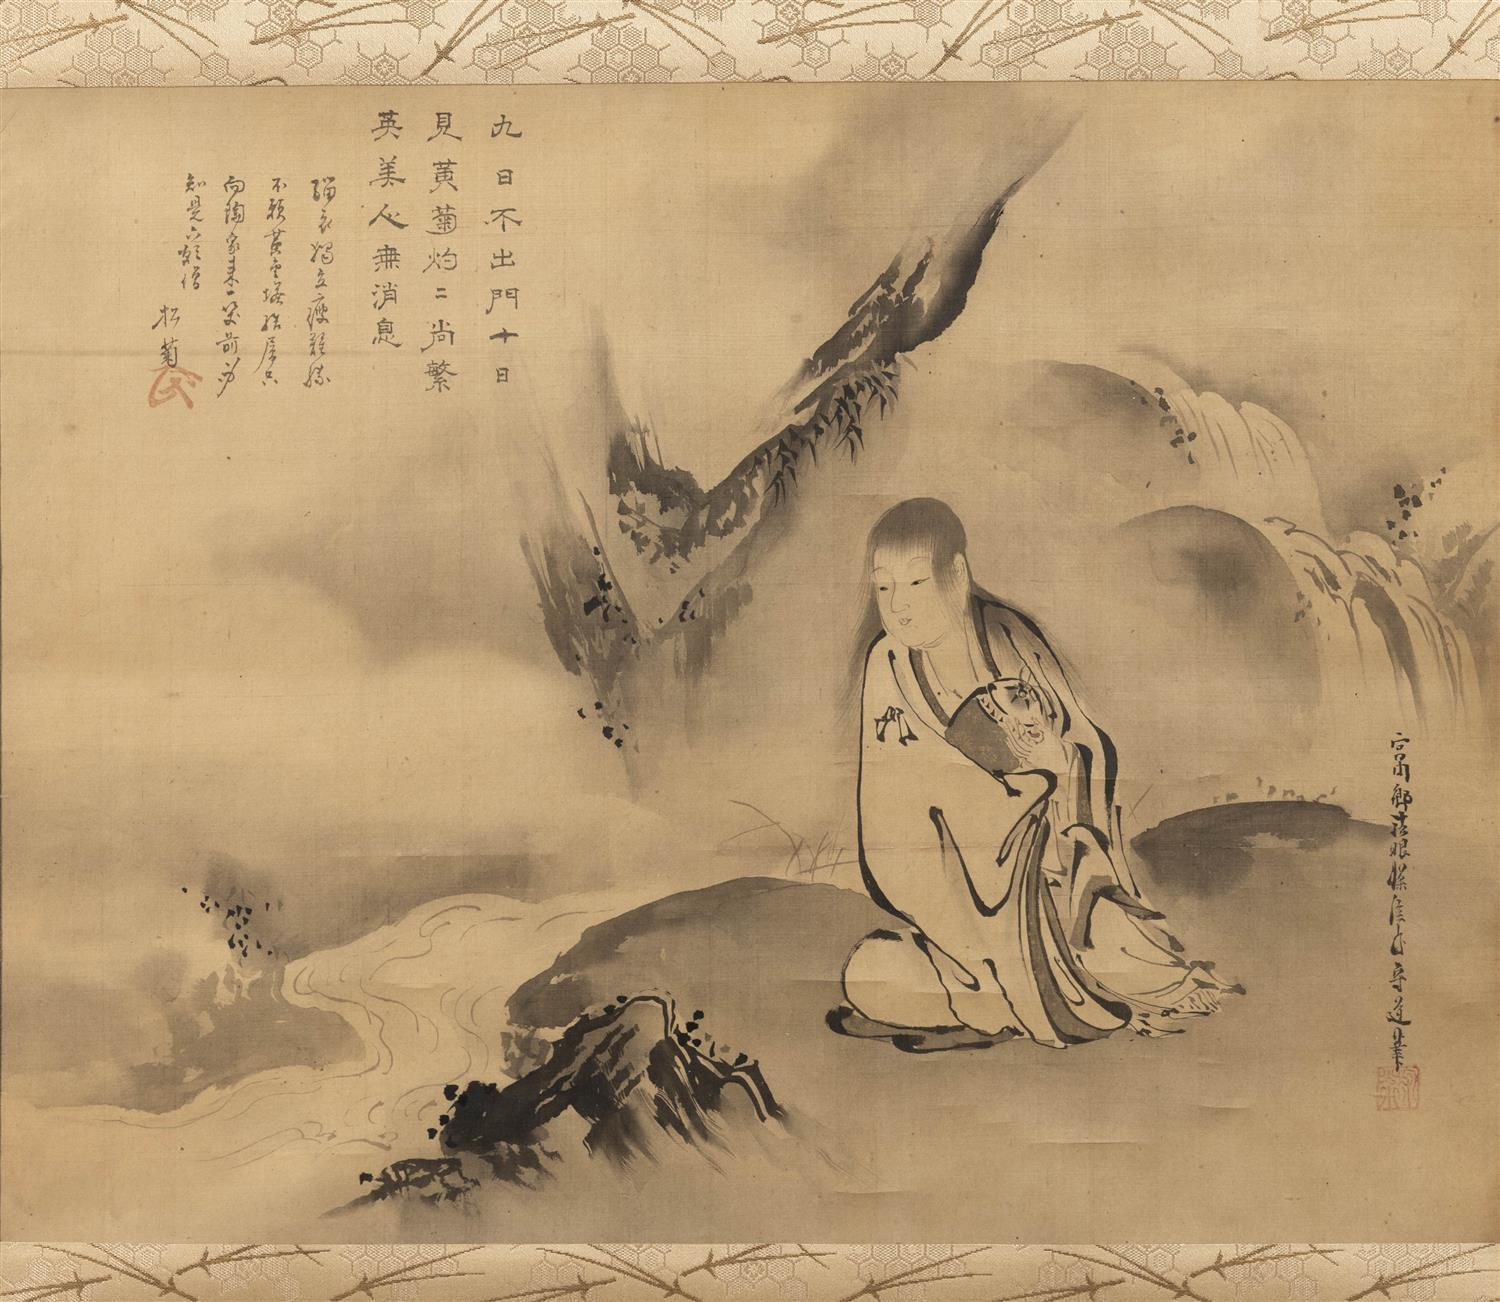 JAPANESE SCROLL PAINTING ON SILK BY KANO TANSHIN MORIMICHI (1784-1835) Depicts a lohan seated by a stream and poetry. Signed and sea...